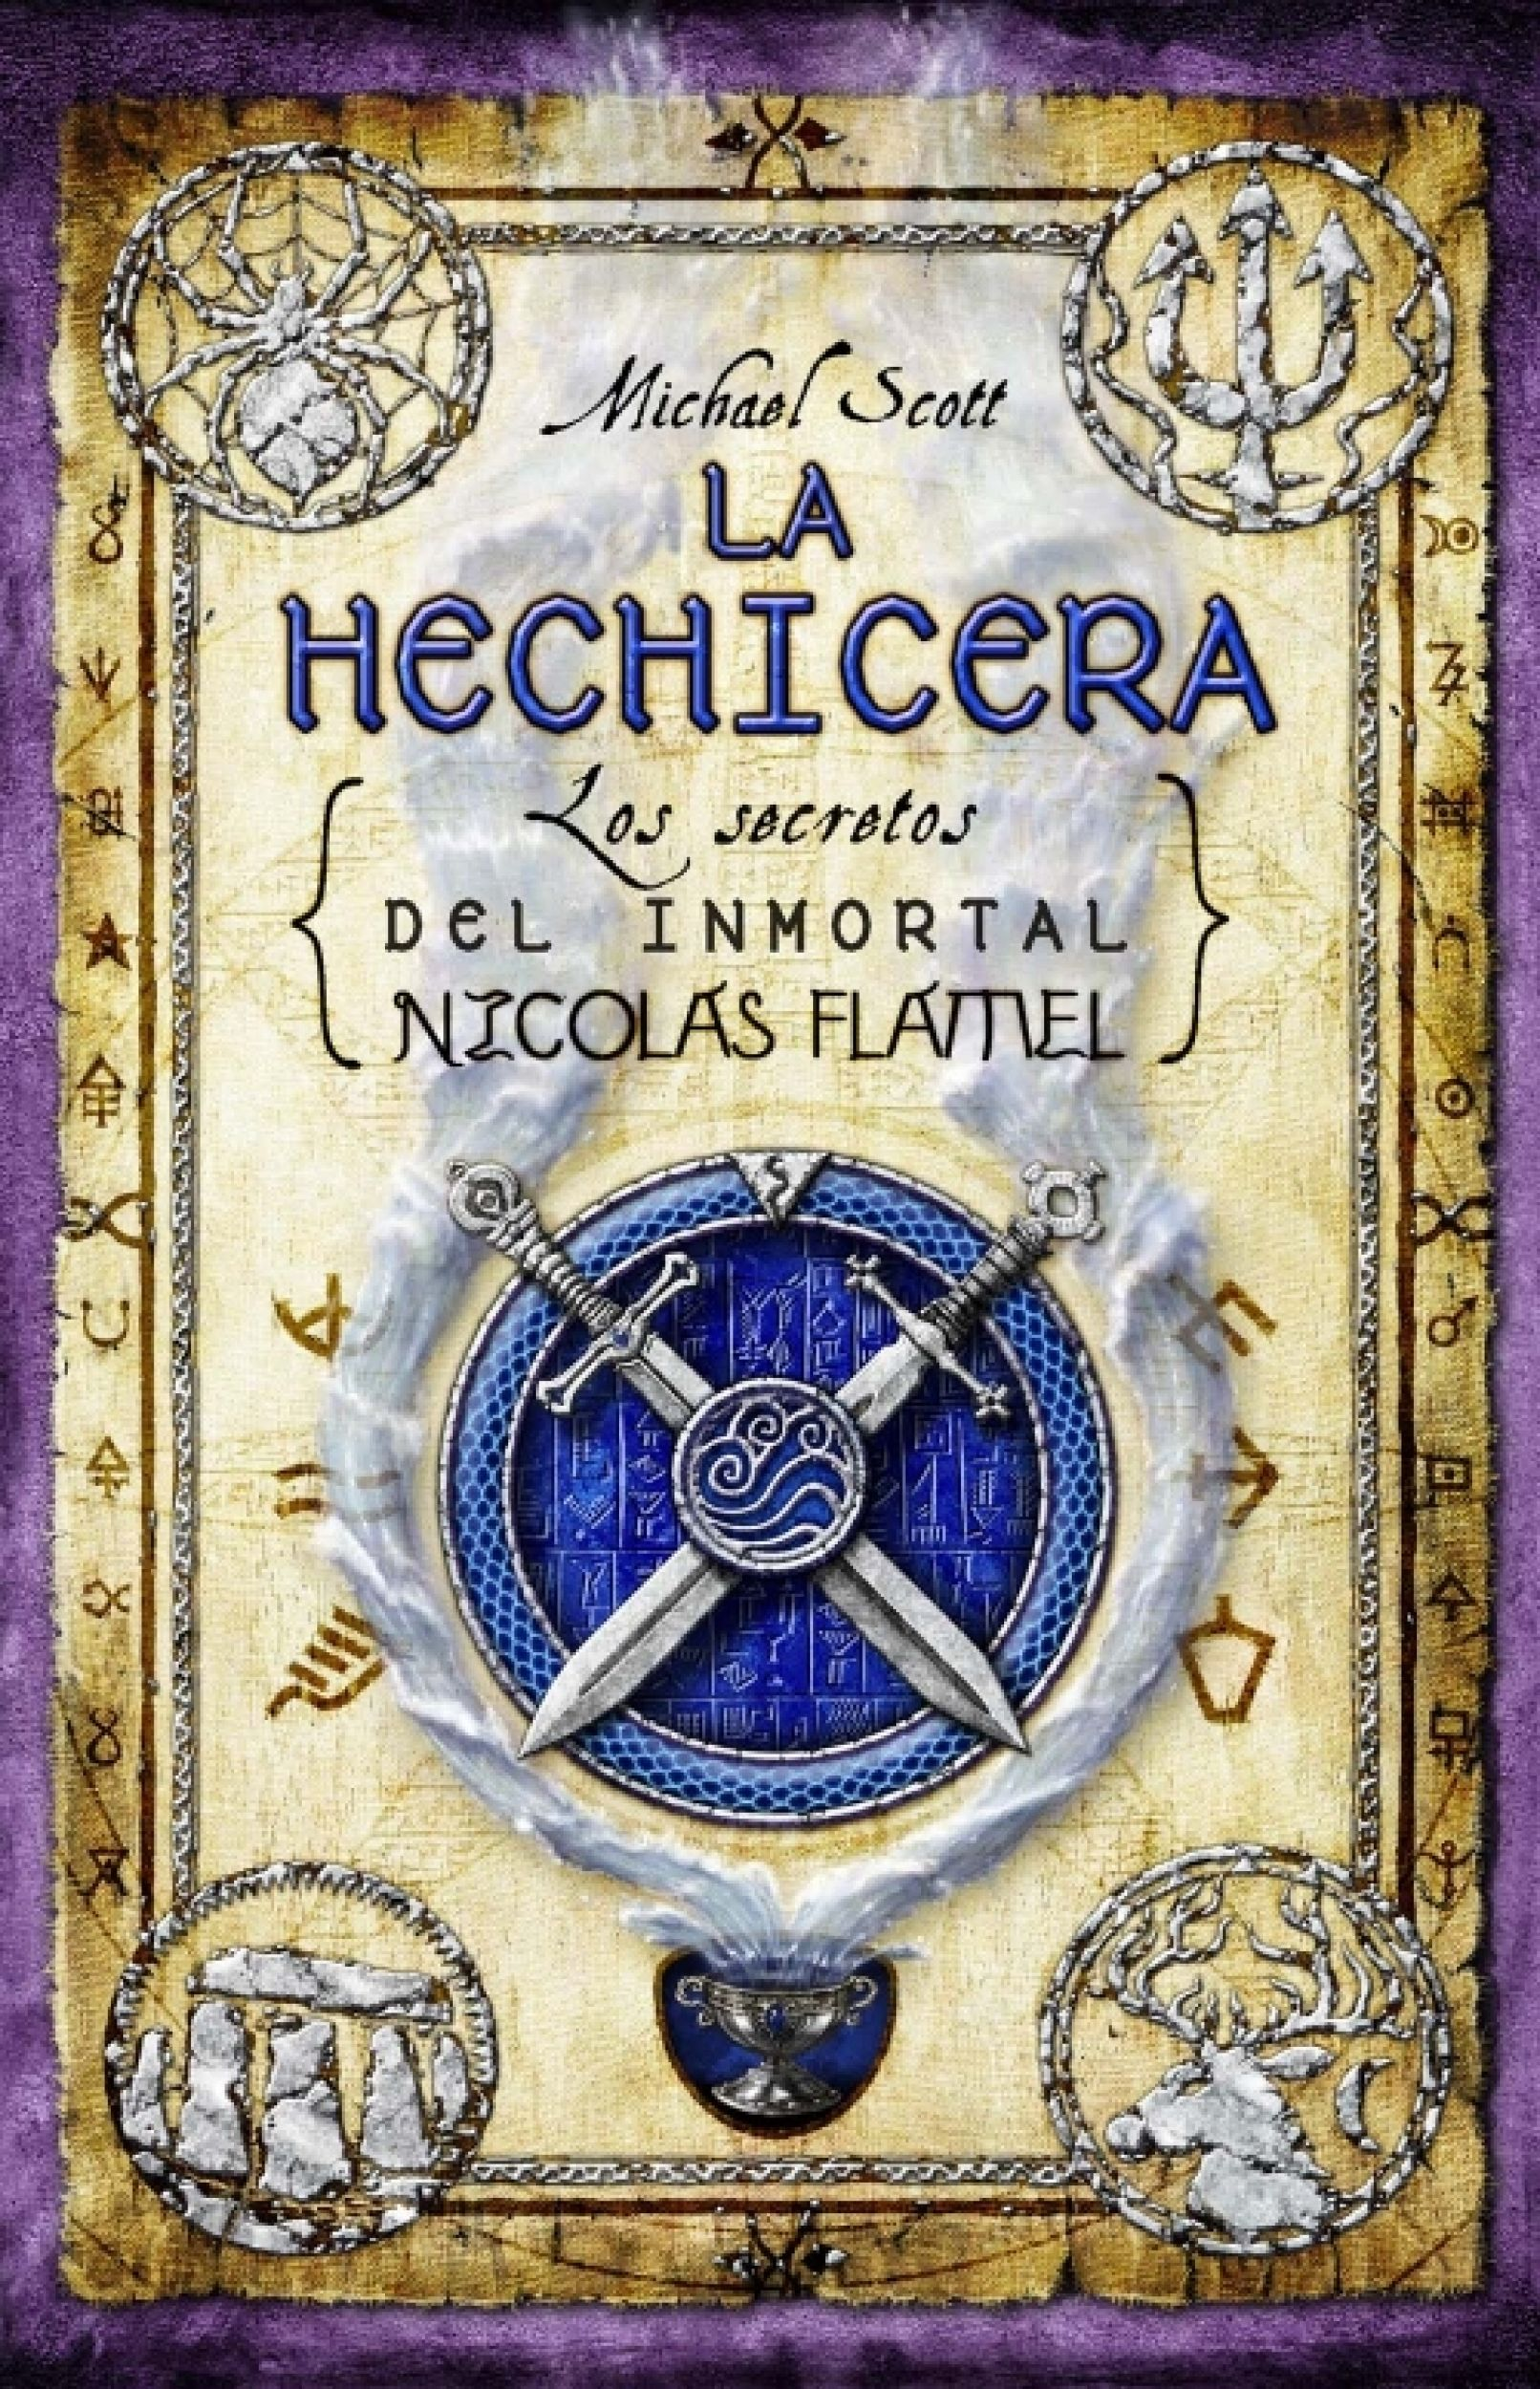 Read The First Chapter Of The Sorceress Listen To The First Chapter Of The  Sorceress The Sorceress Is In Stores Now Nicholas Flamel's Heart Almost  Broke As